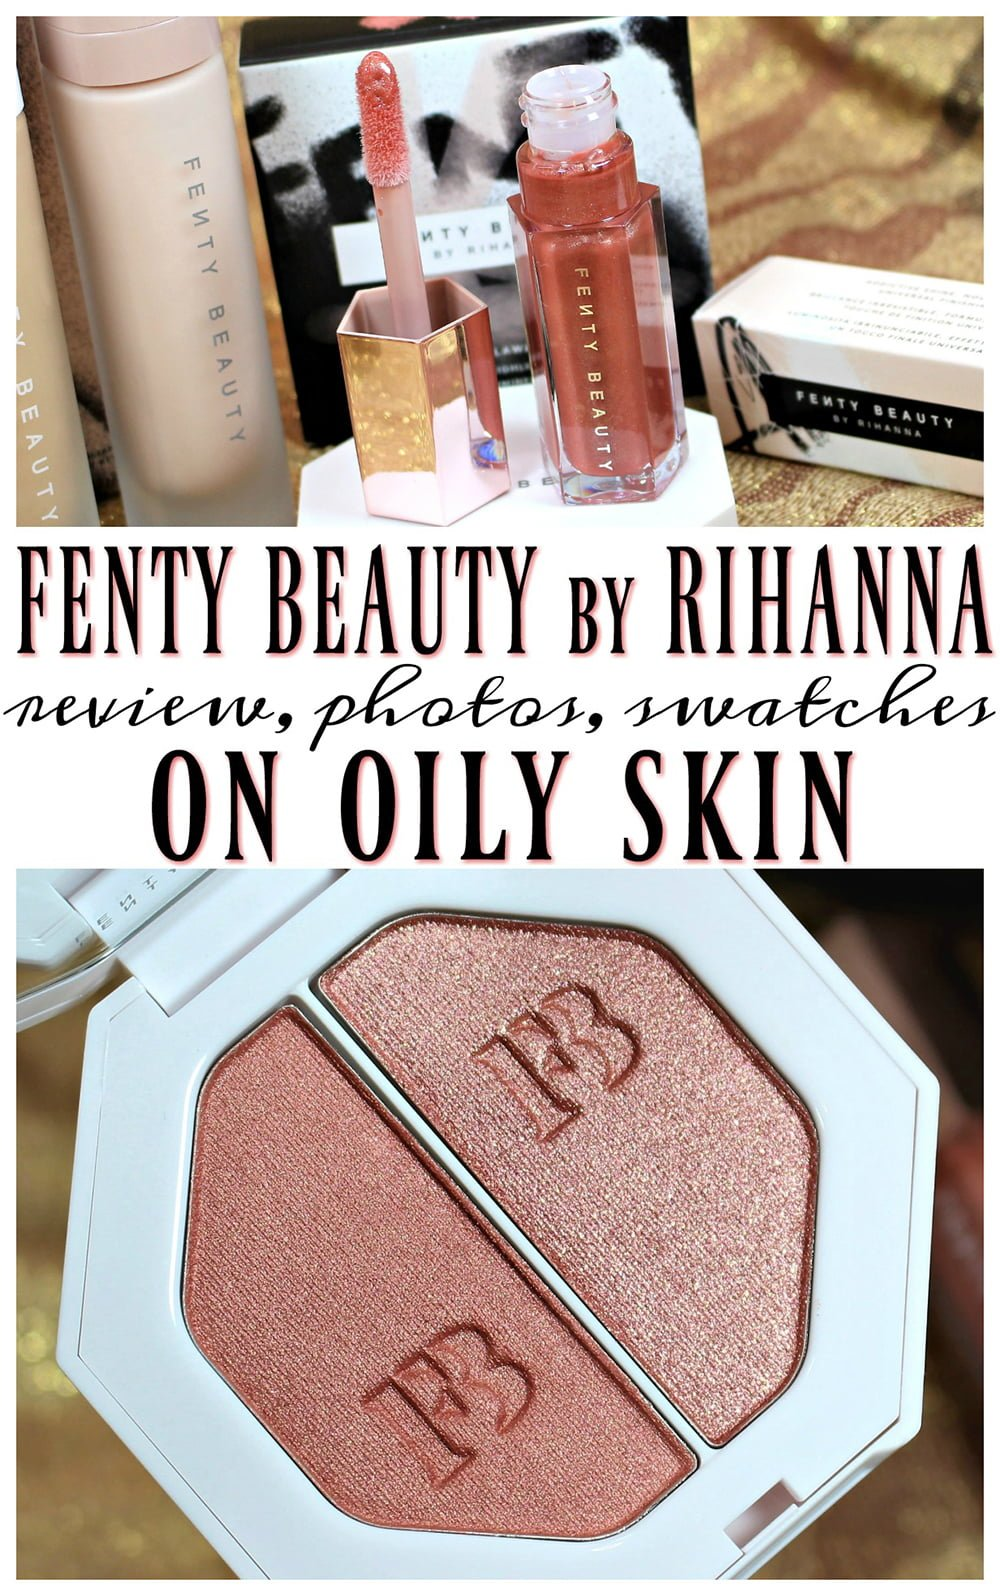 Fenty Beauty by Rihanna Makeup Review